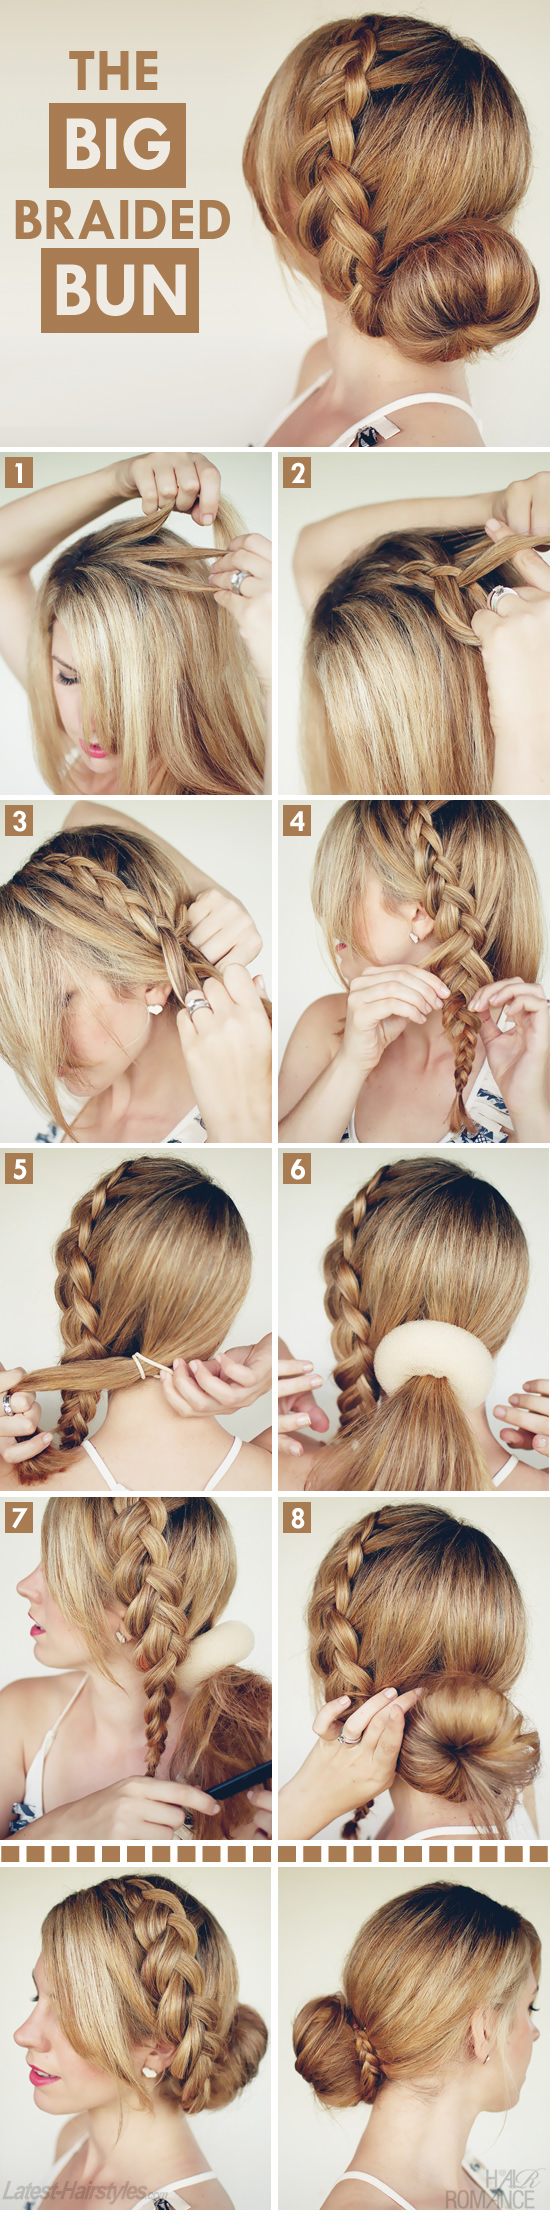 The Big Braided Bun Tutorial